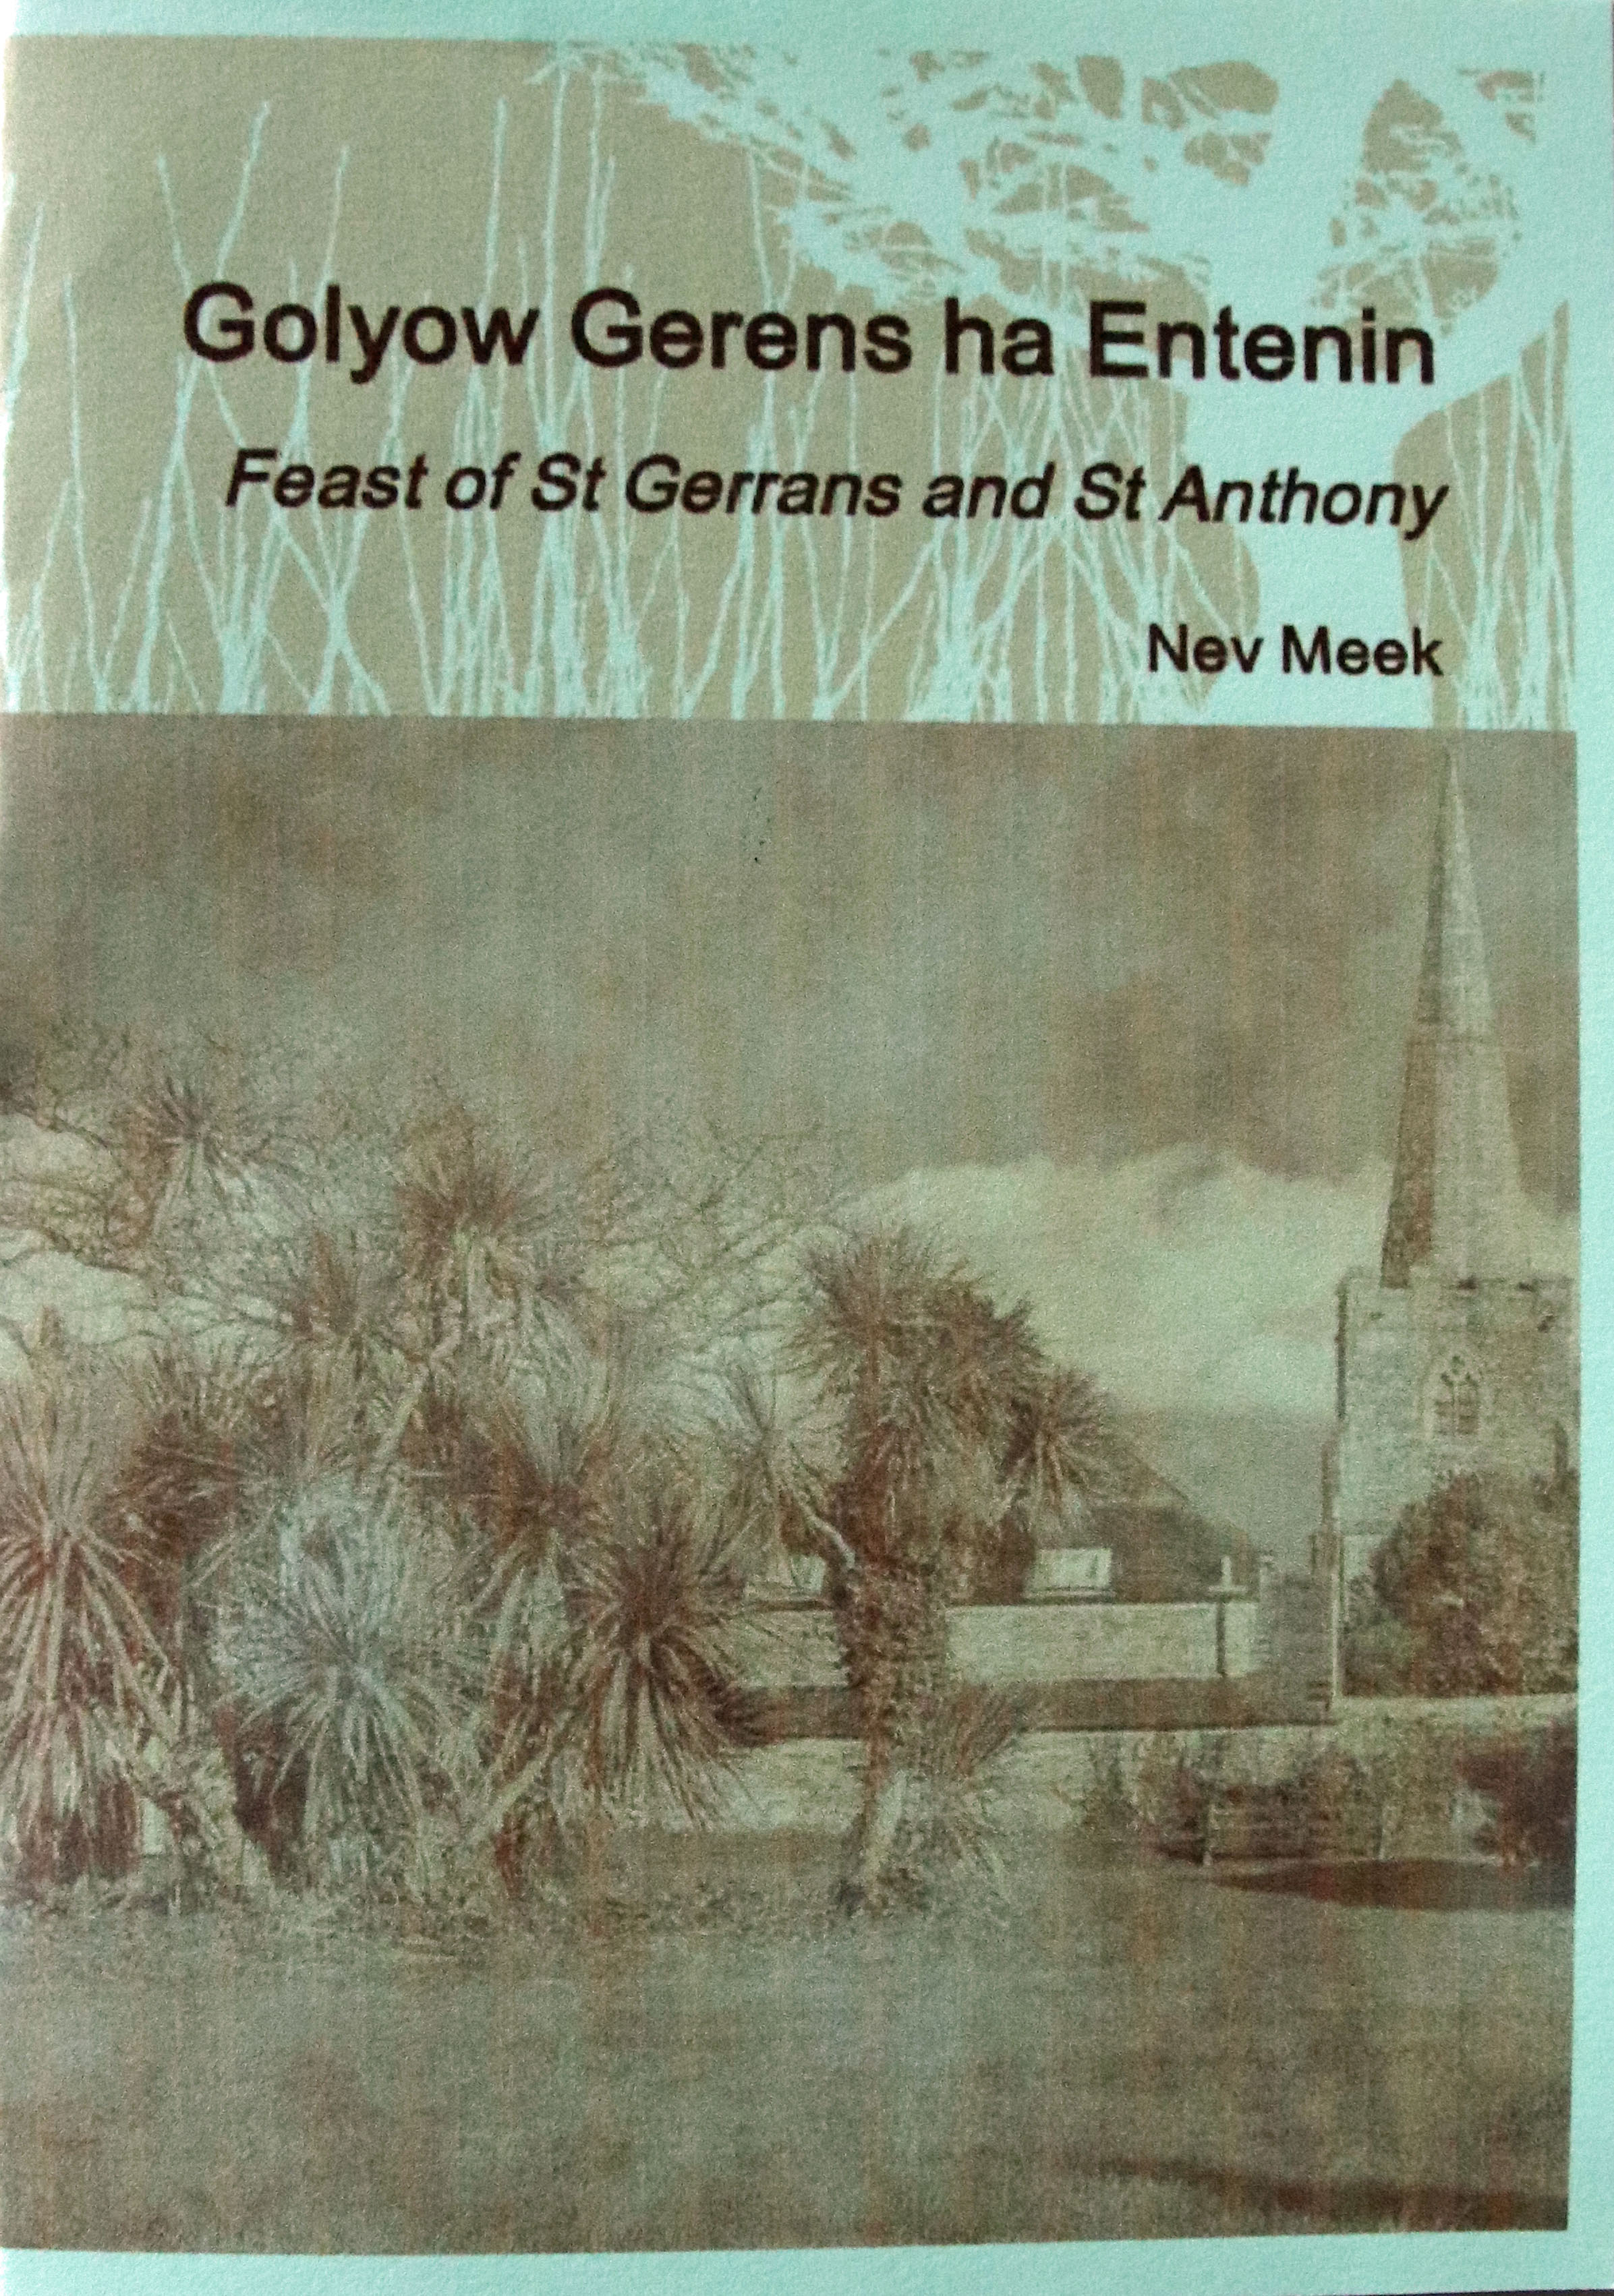 Feast of St gerrans and St Anthony